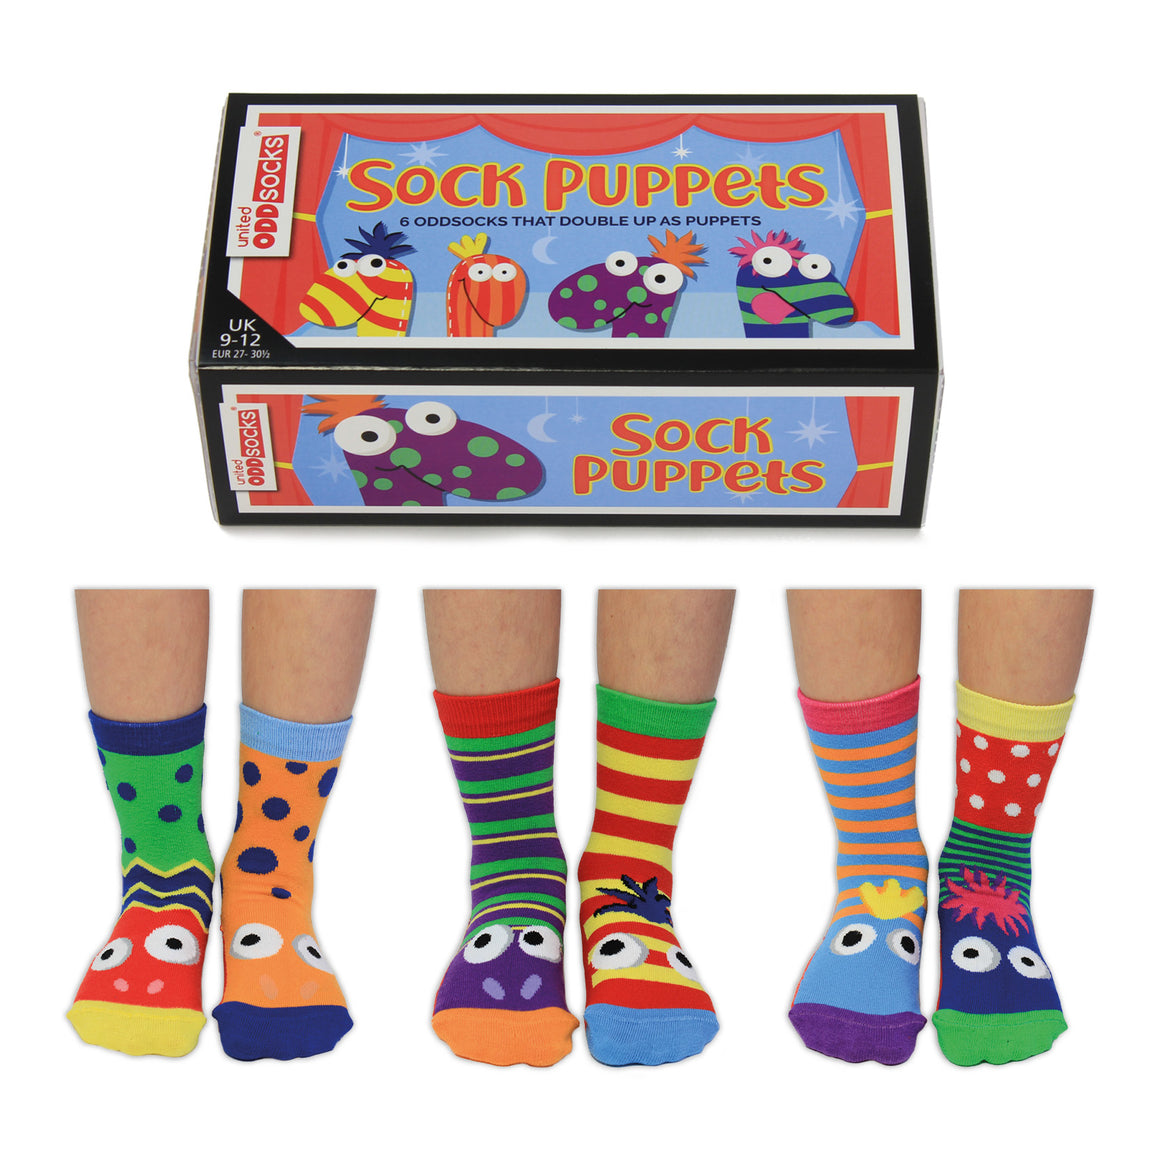 United Odd Socks Sock Puppets Boys Gift Box - The Love Trees